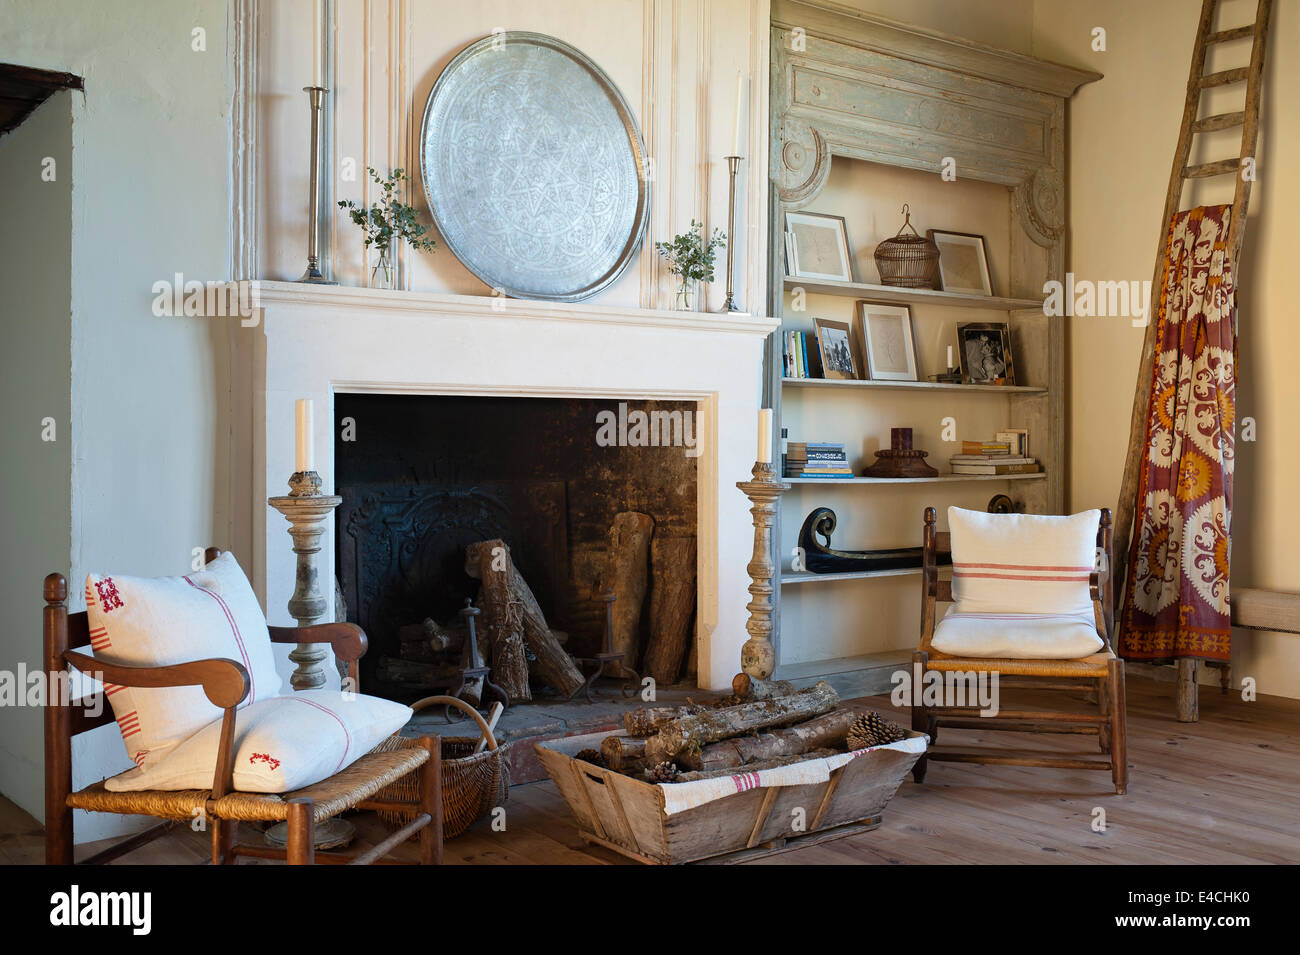 wooden armchairs and log basket by large open fireplace in